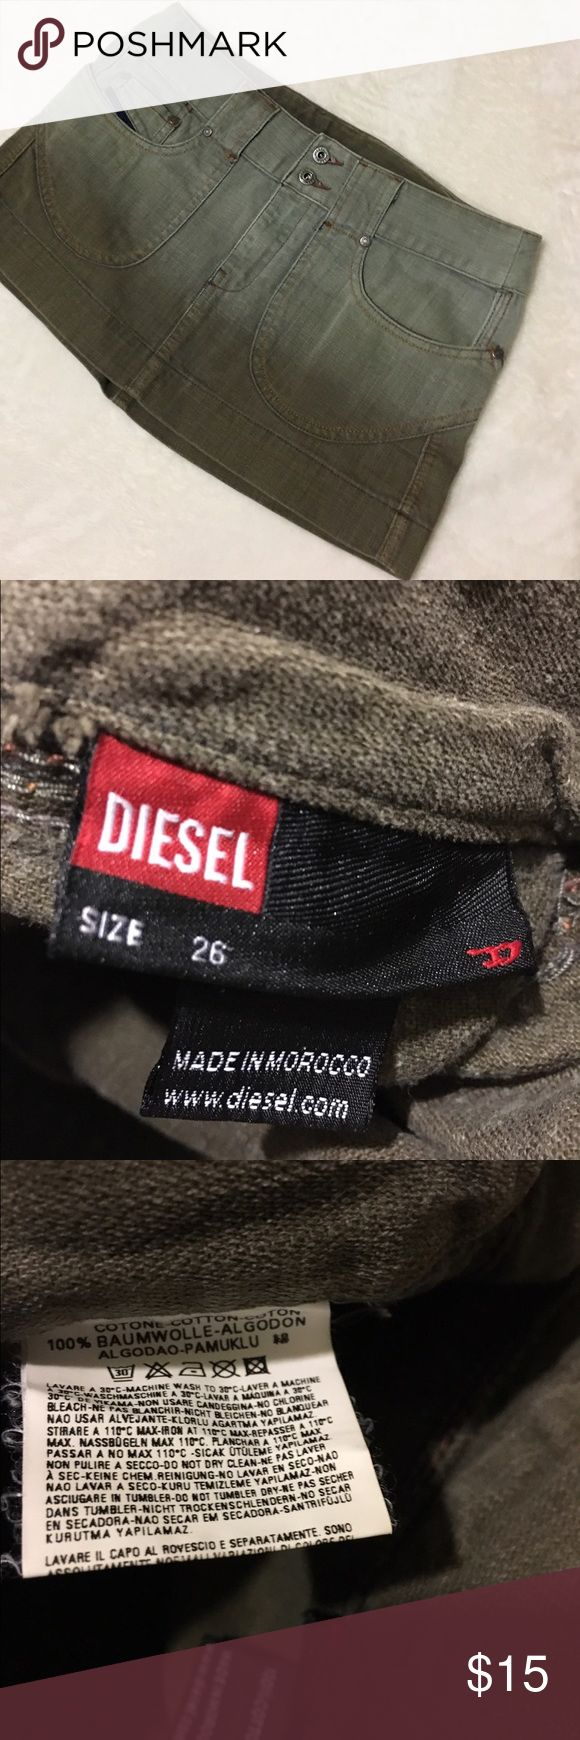 Diesel Diesel mini jean skirt, two toned. Faded green color. Size 26 Diesel Skirts Mini